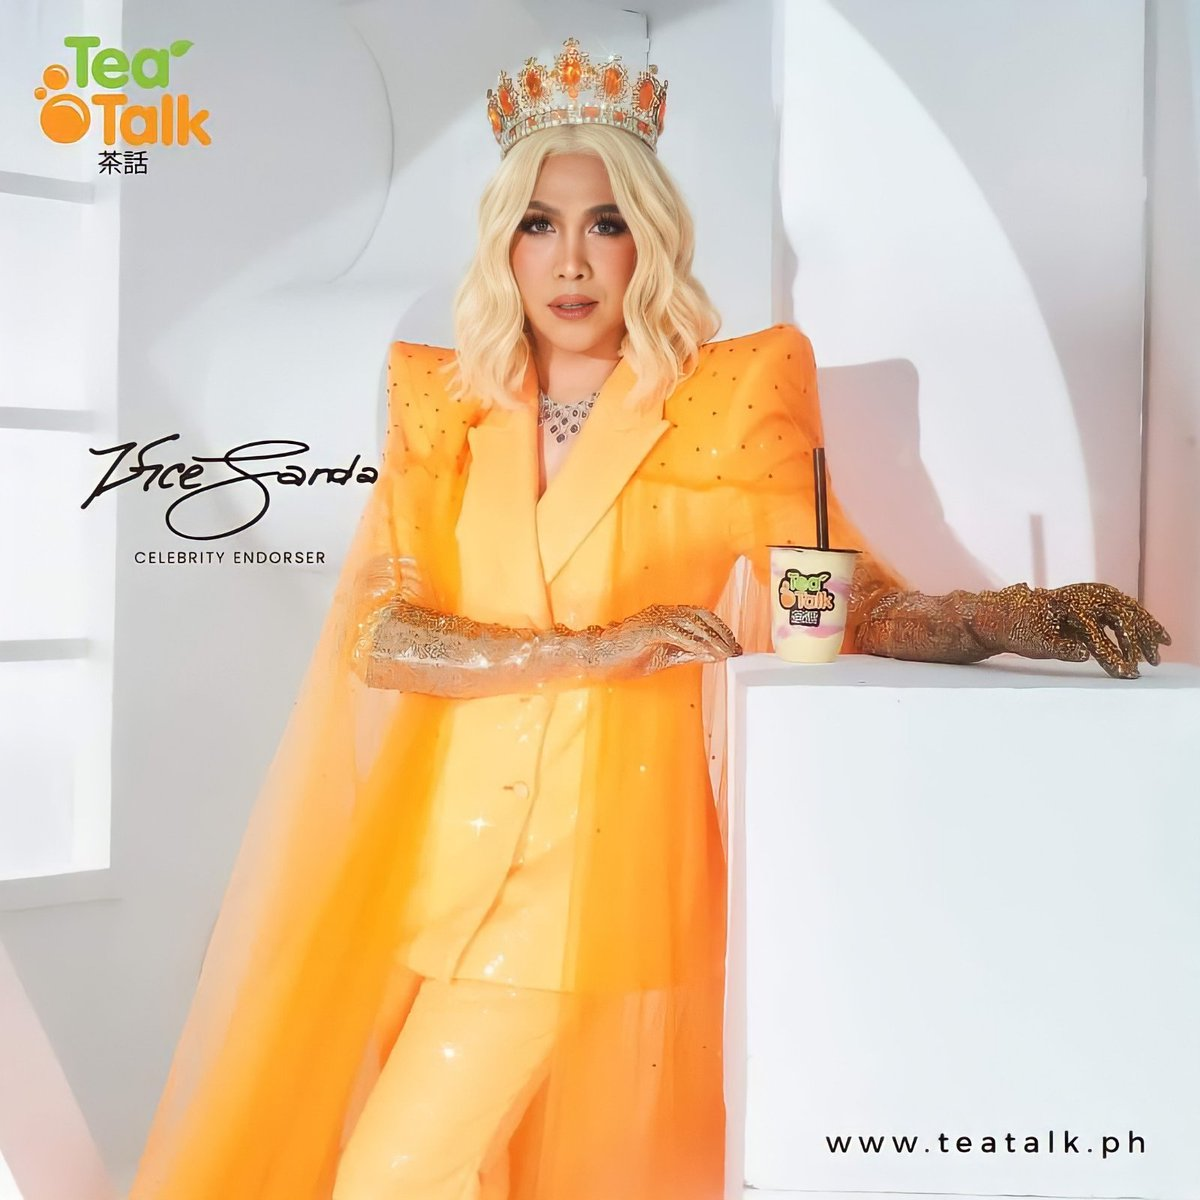 Replying to @ViFeelings: A QUEEN, YES NO DOUBT LOVE U BEAUTIFUL U @vicegandako 👑🧡